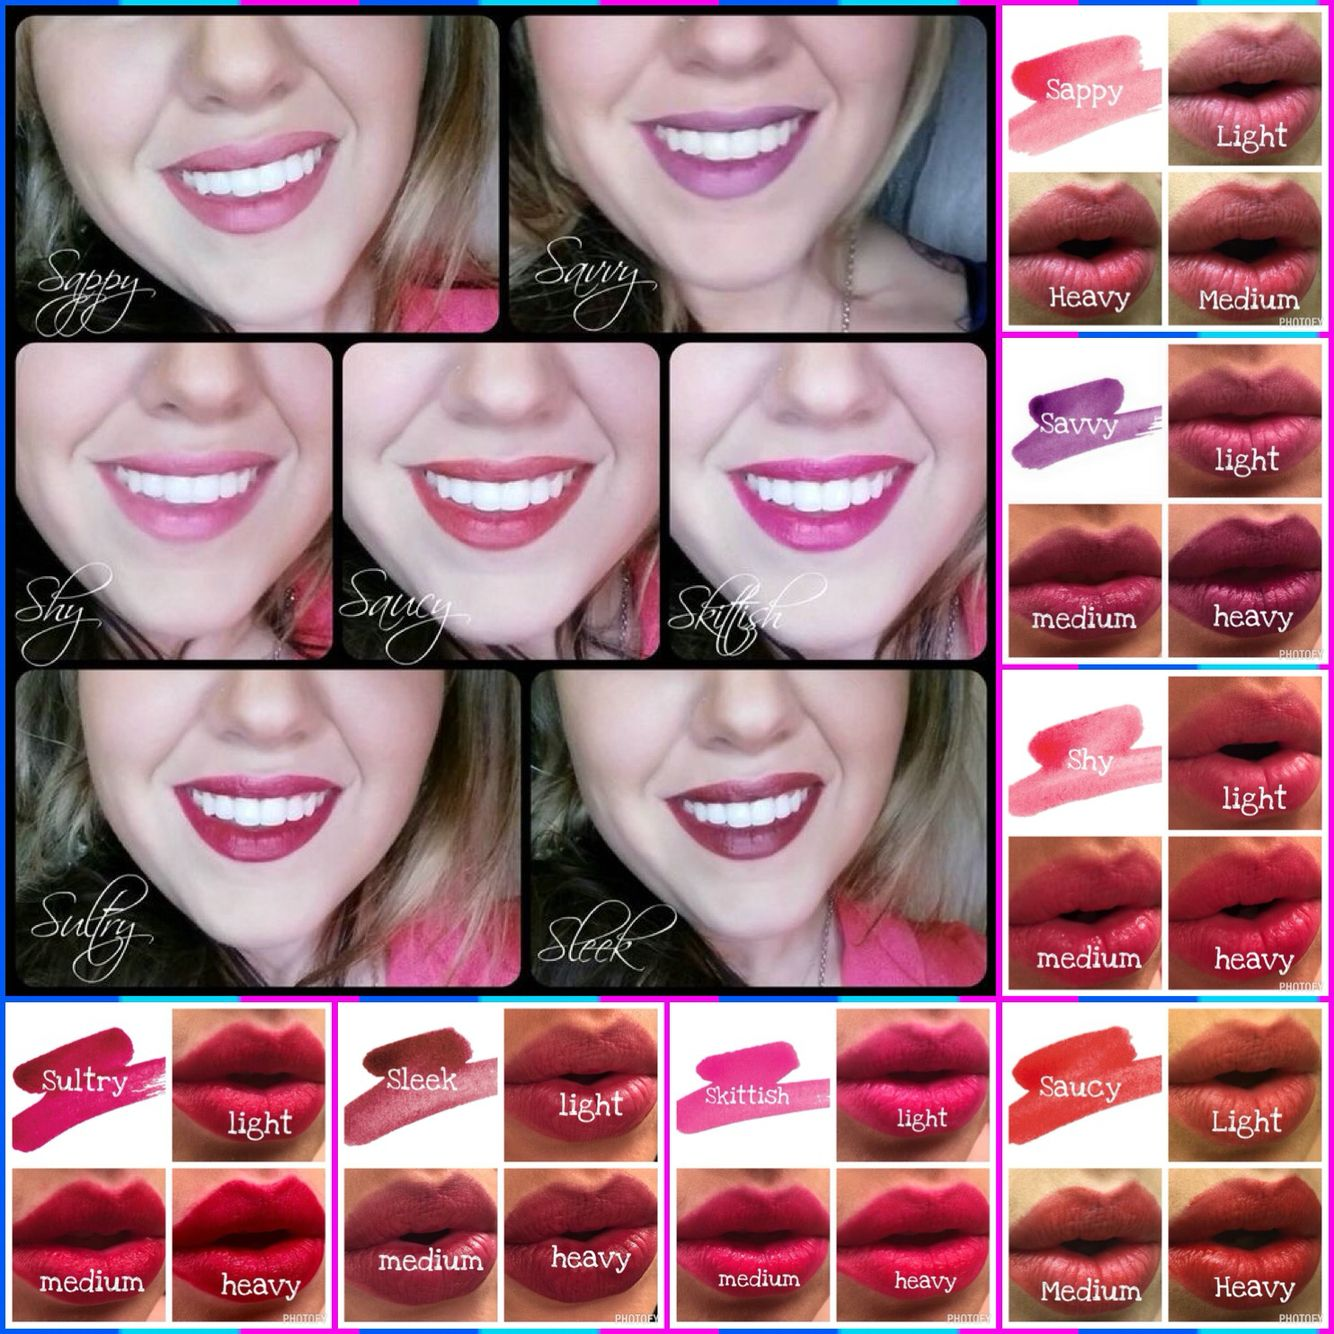 Younique S Stiff Upper Lip Lip Stain Provides Stubborn Lip